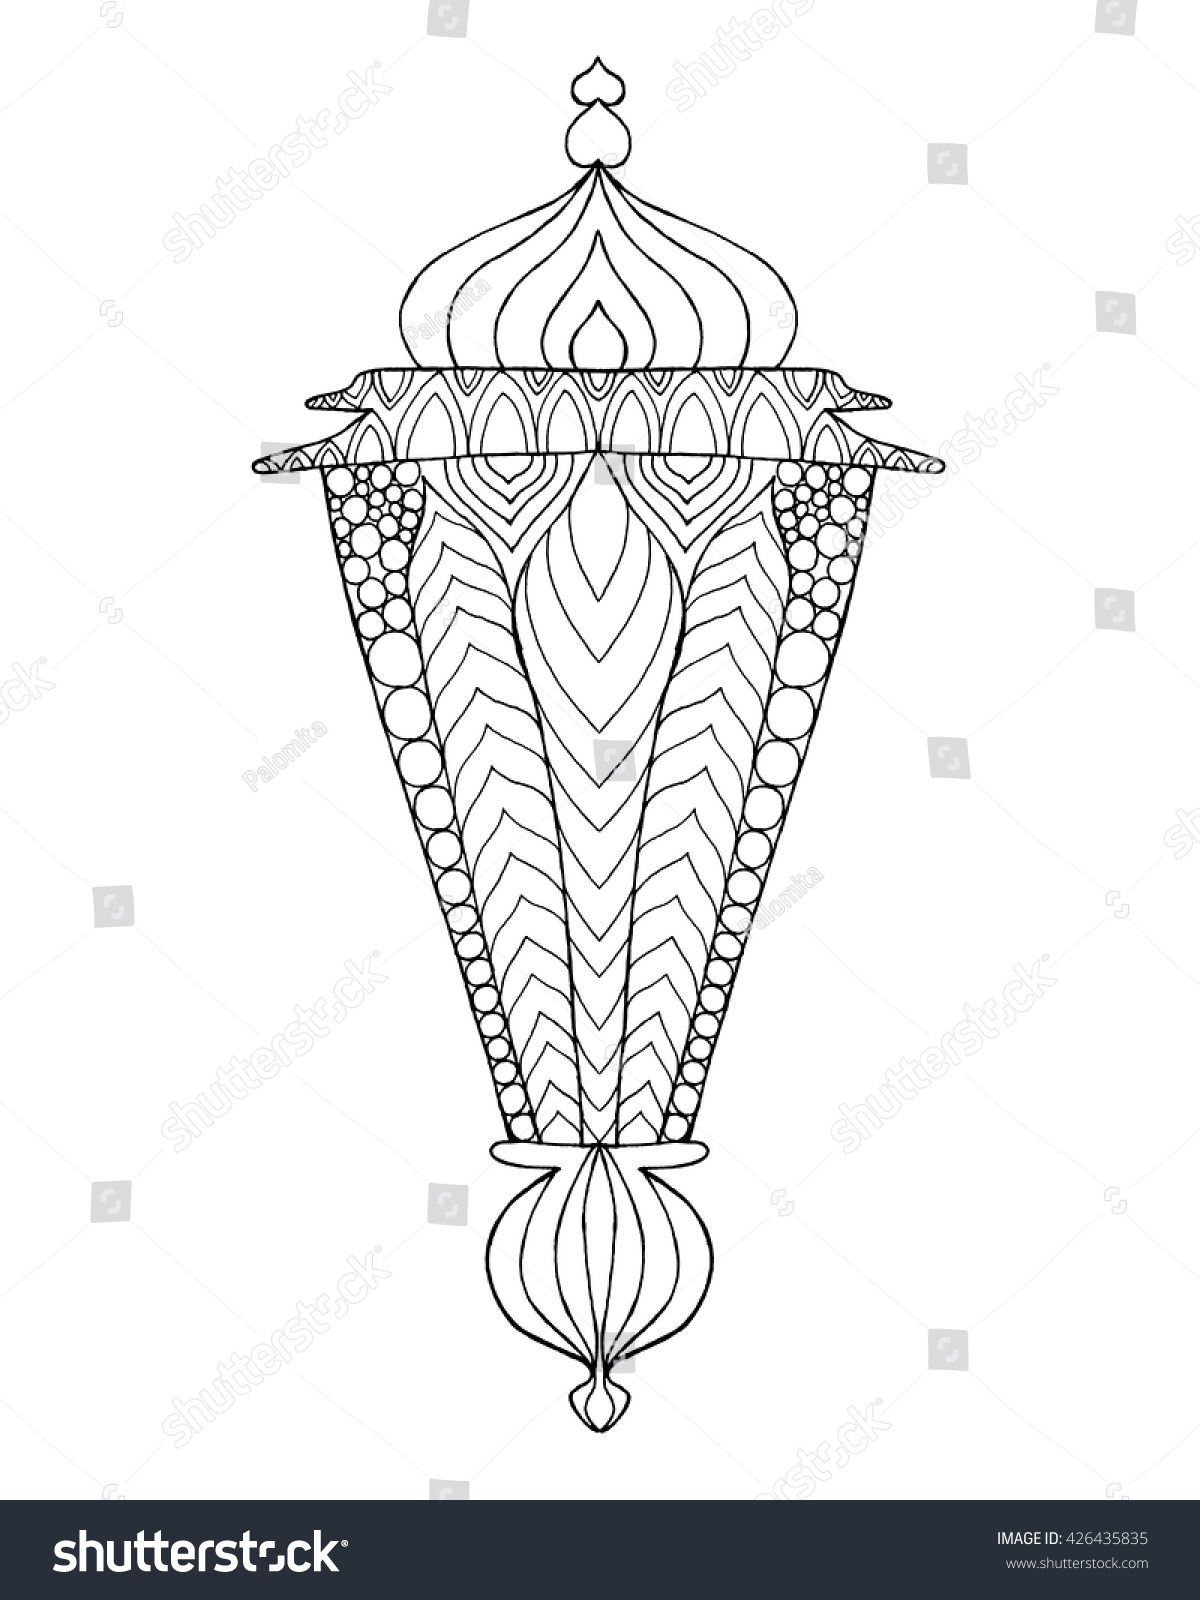 Coloring pages ramadan - Hand Drawn Traditional Lantern Of Ramadan Engraved Vector Illustration Sketch For Coloring Page